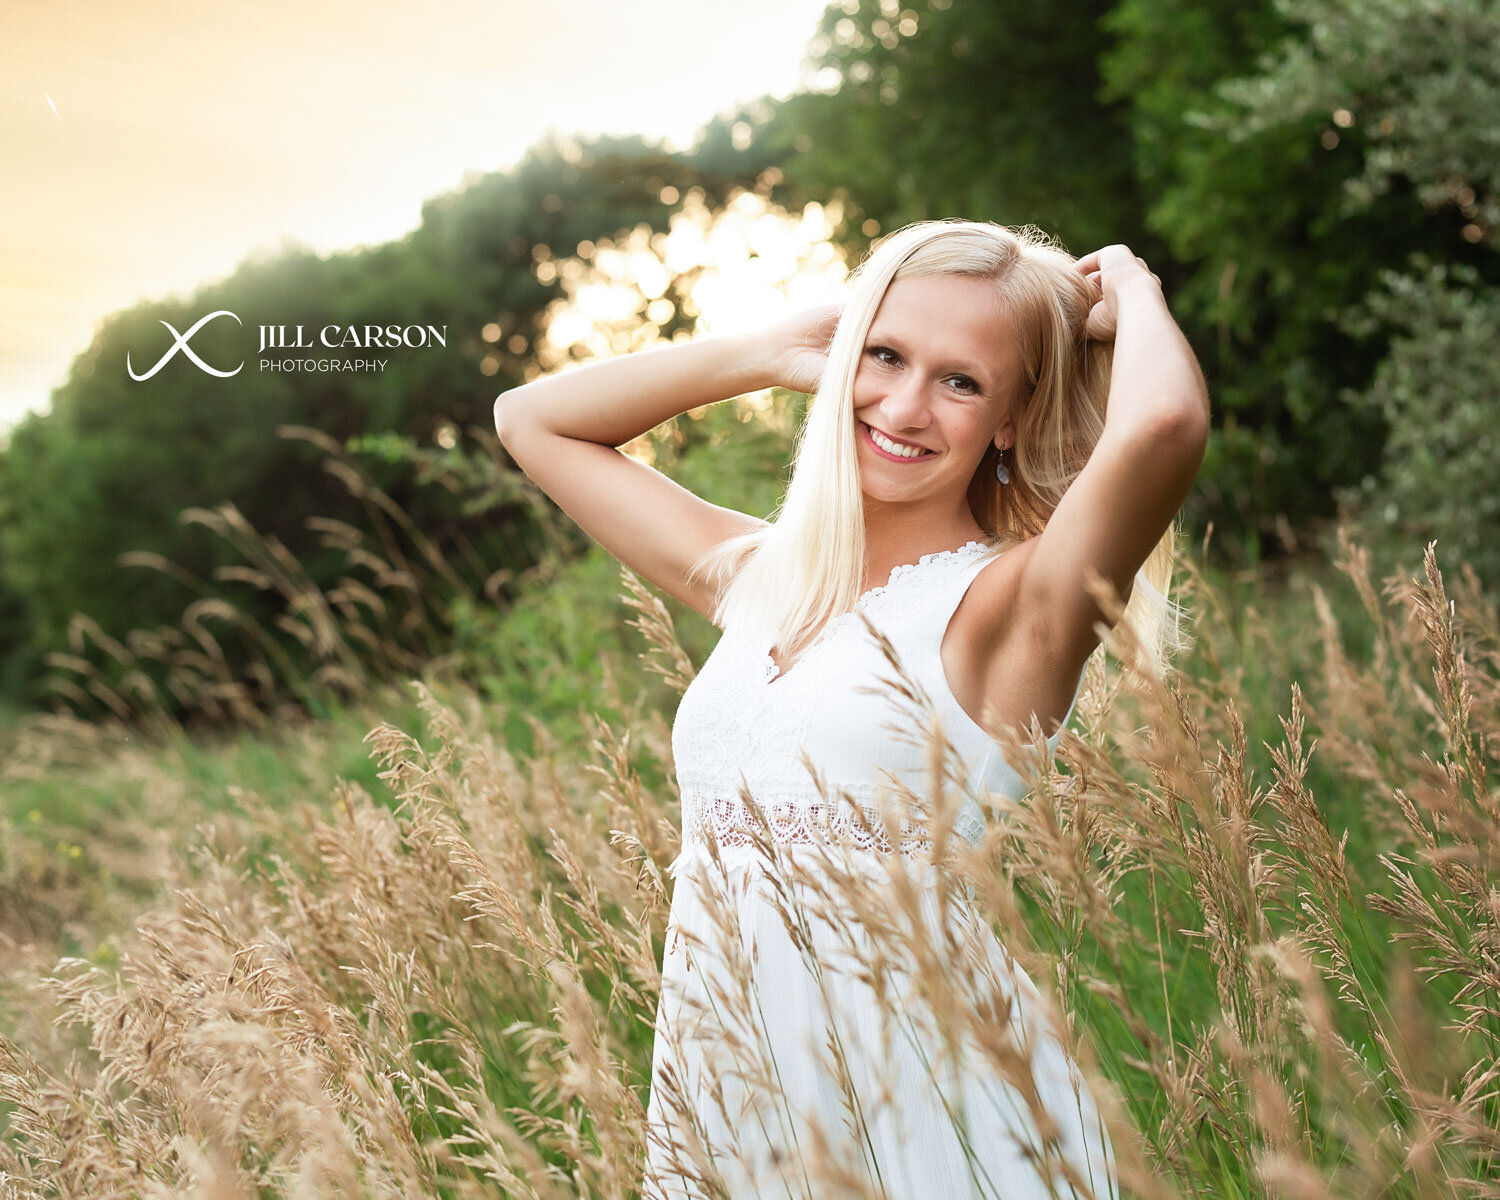 Outdoor senior session